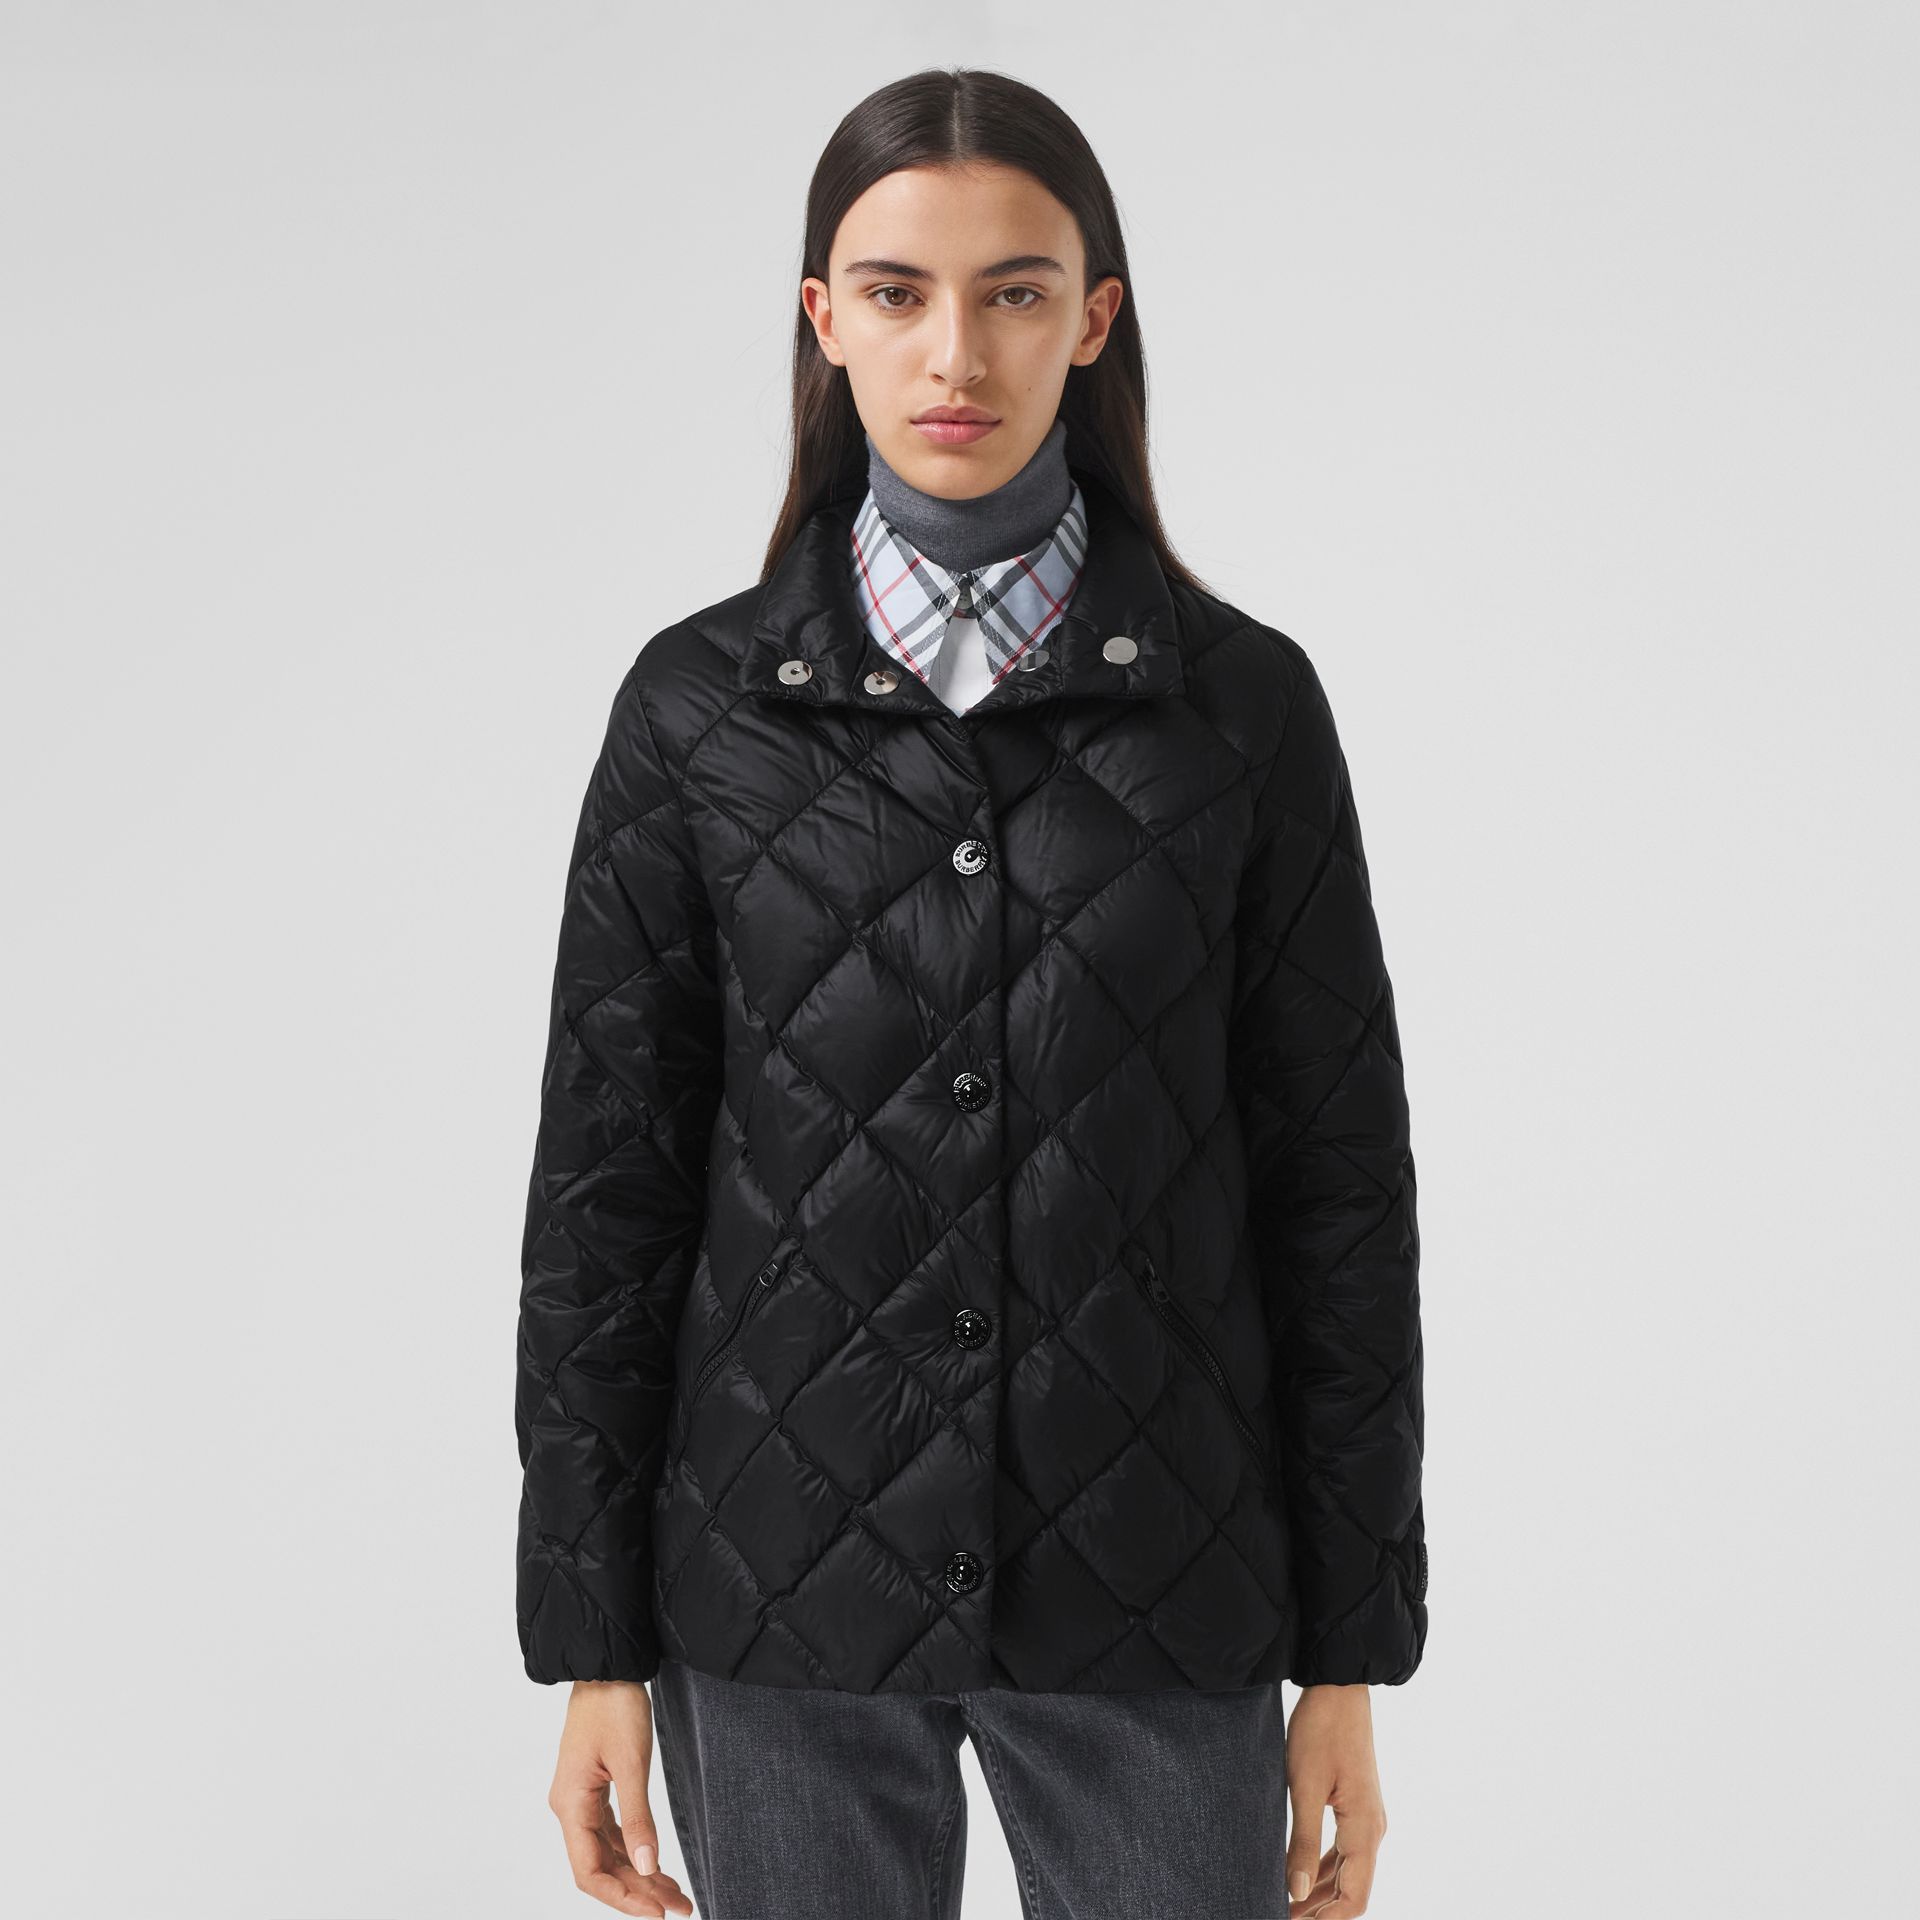 Diamond Quilted Down-filled Jacket in Black - Women | Burberry - gallery image 5